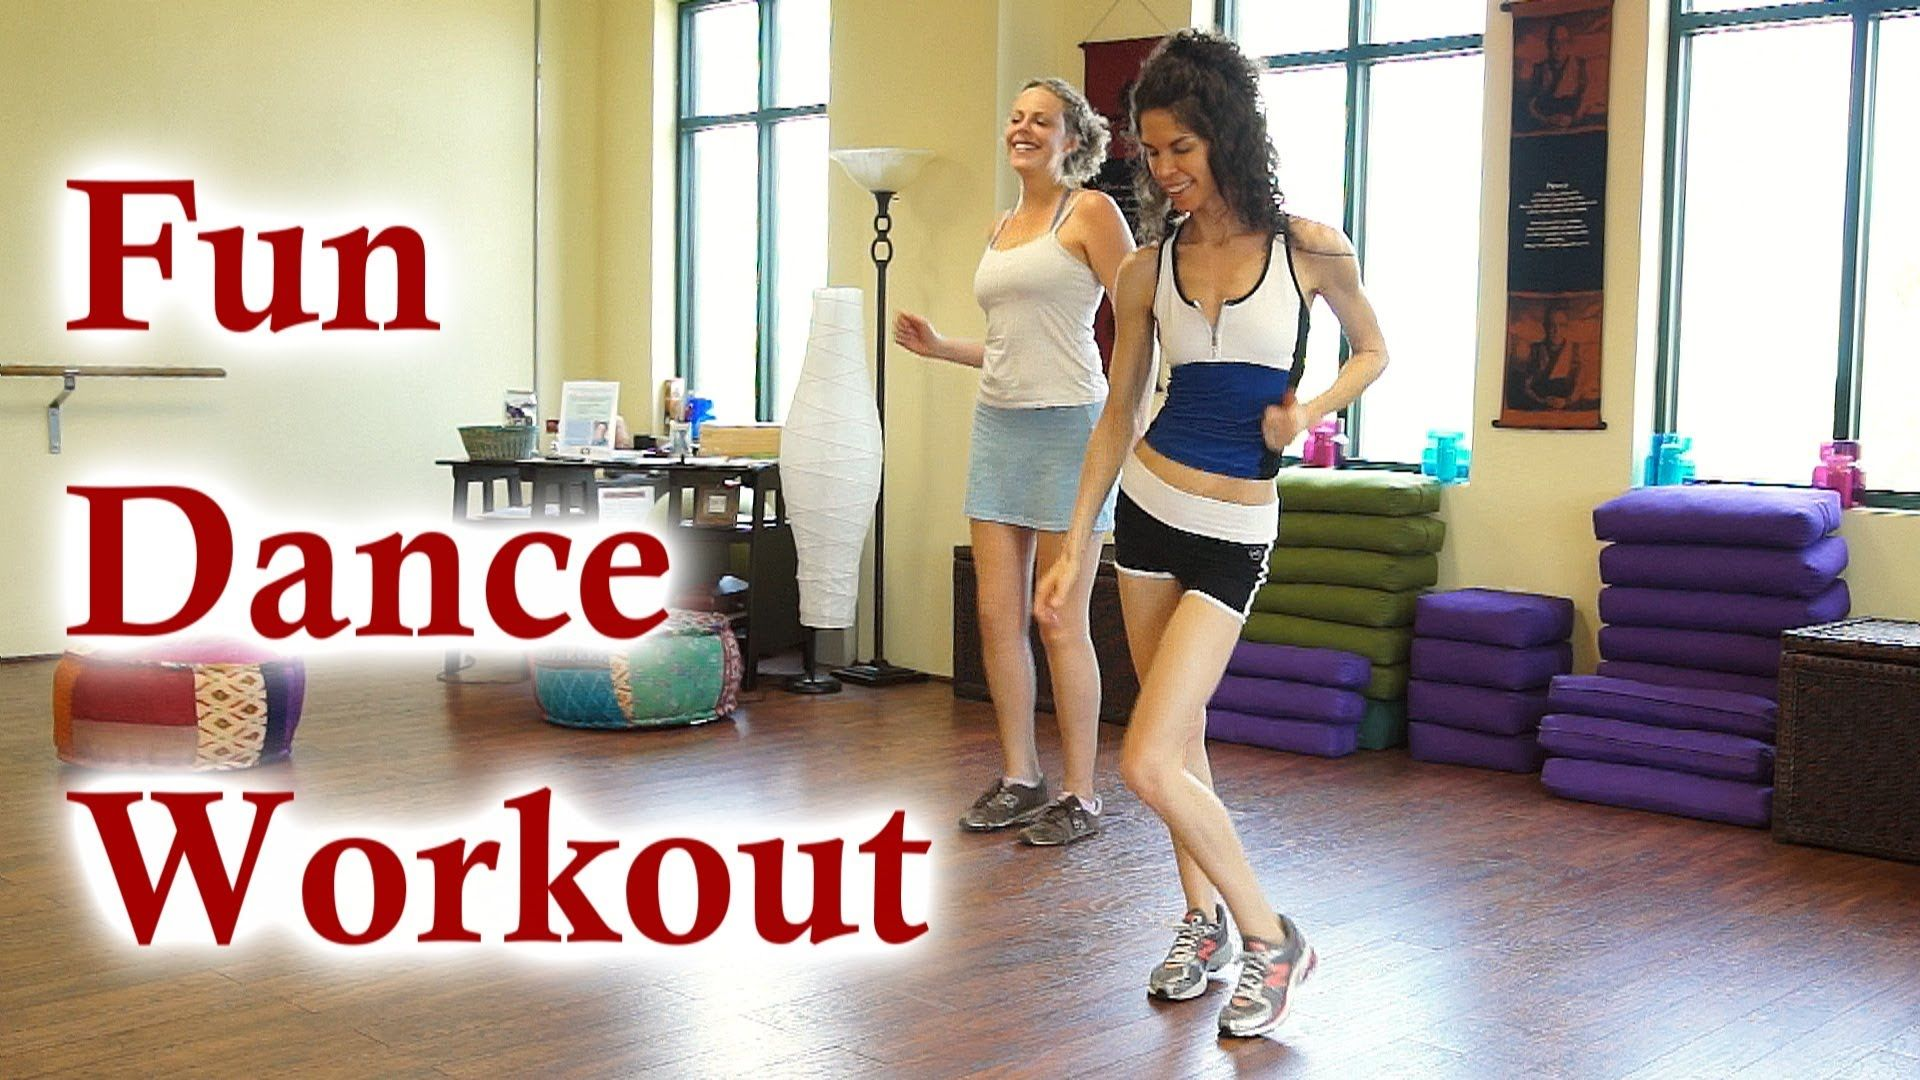 Fun dance workout 12 minute at home cardio music routine for weight fun dance workout 12 minute at home cardio music routine for weight loss beginners ccuart Choice Image